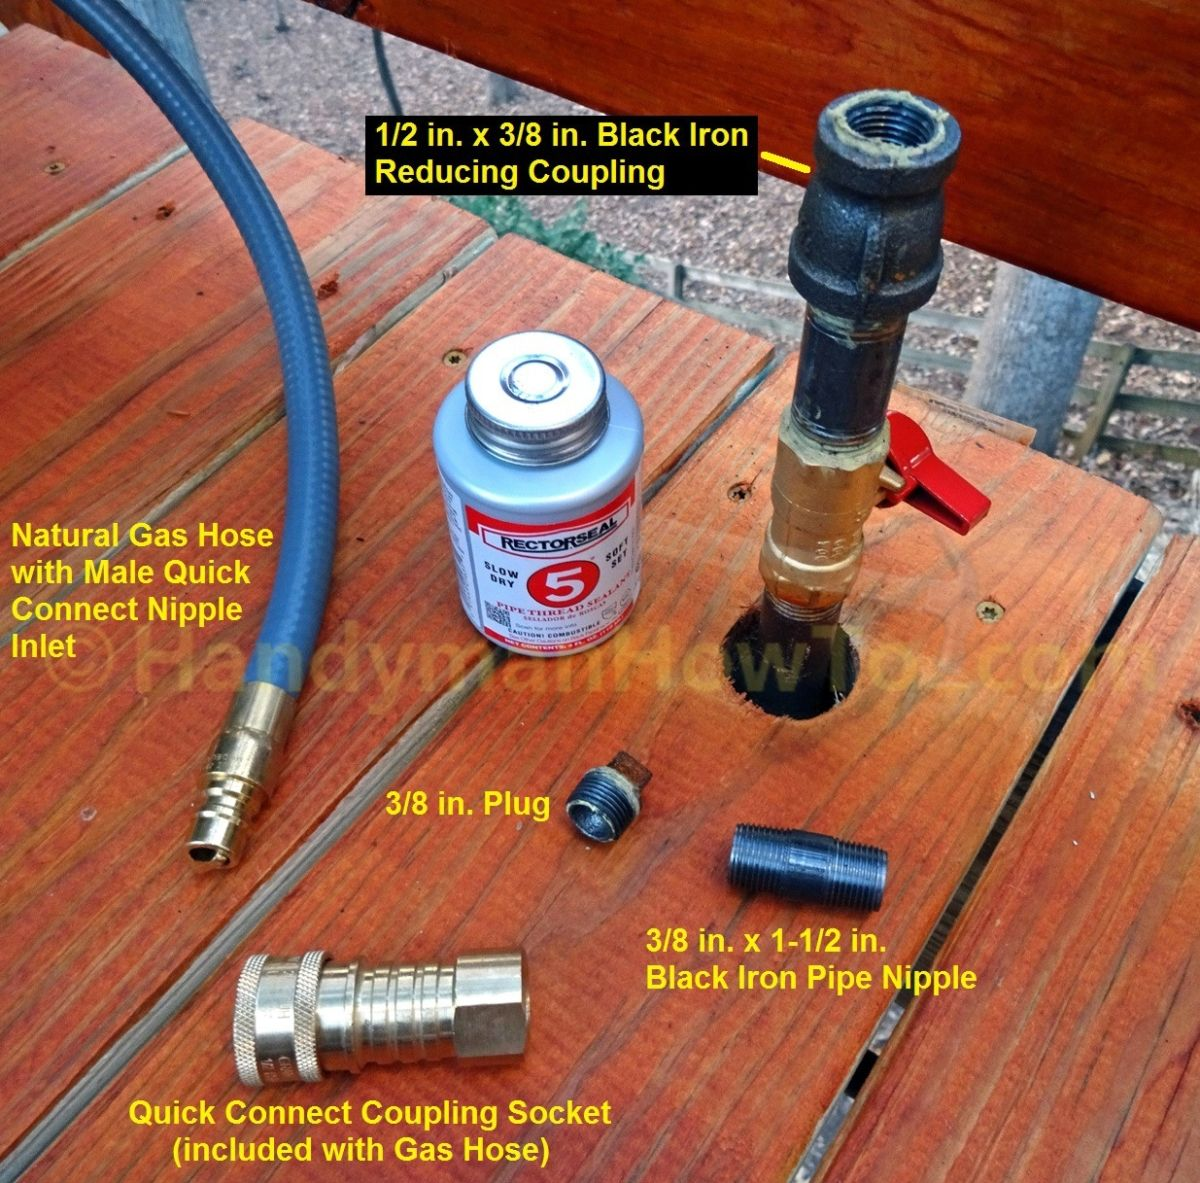 How To Install A Natural Gas Shutoff Valve For A Grill Part 2 Natural Gas Grill Best Portable Grill Gas